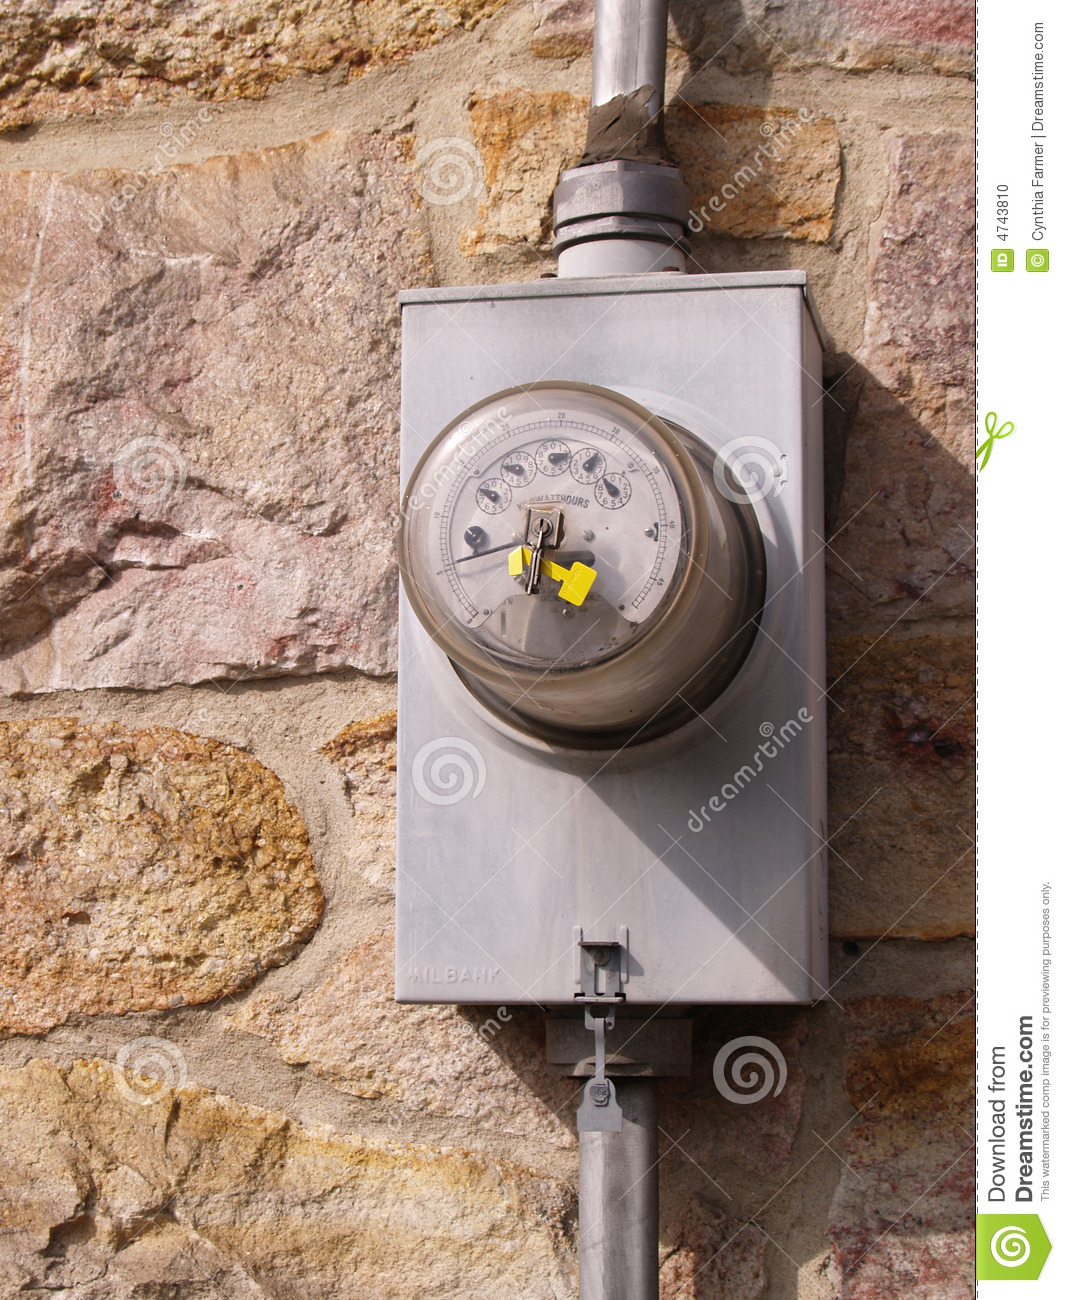 Electric meter by a stone wall